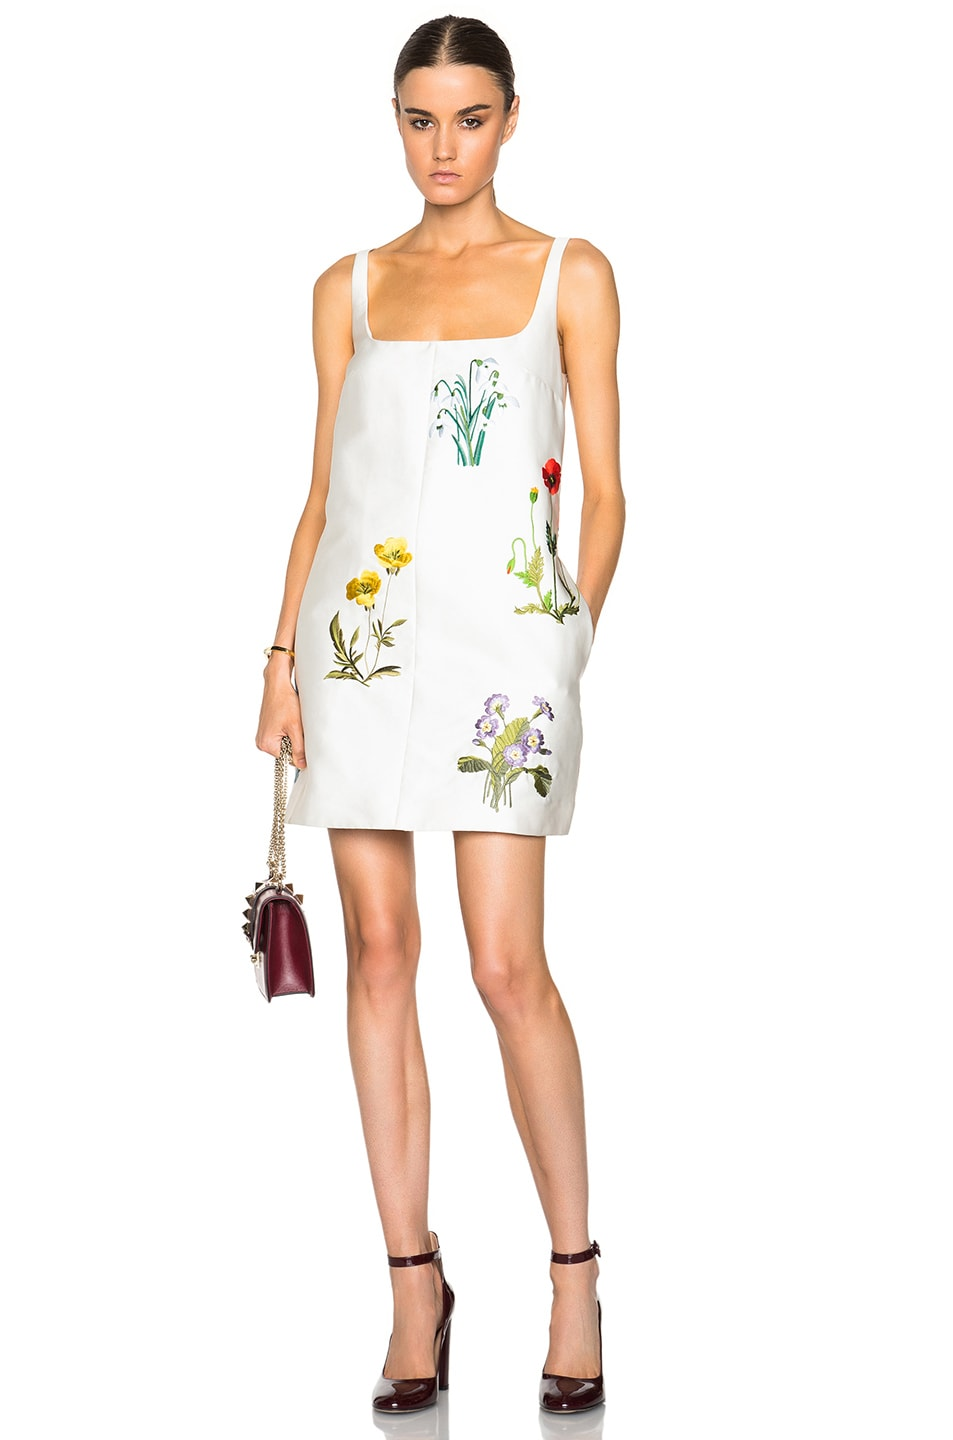 Stella McCartney Marianne Botanical Embroidery Dress in White,Floral